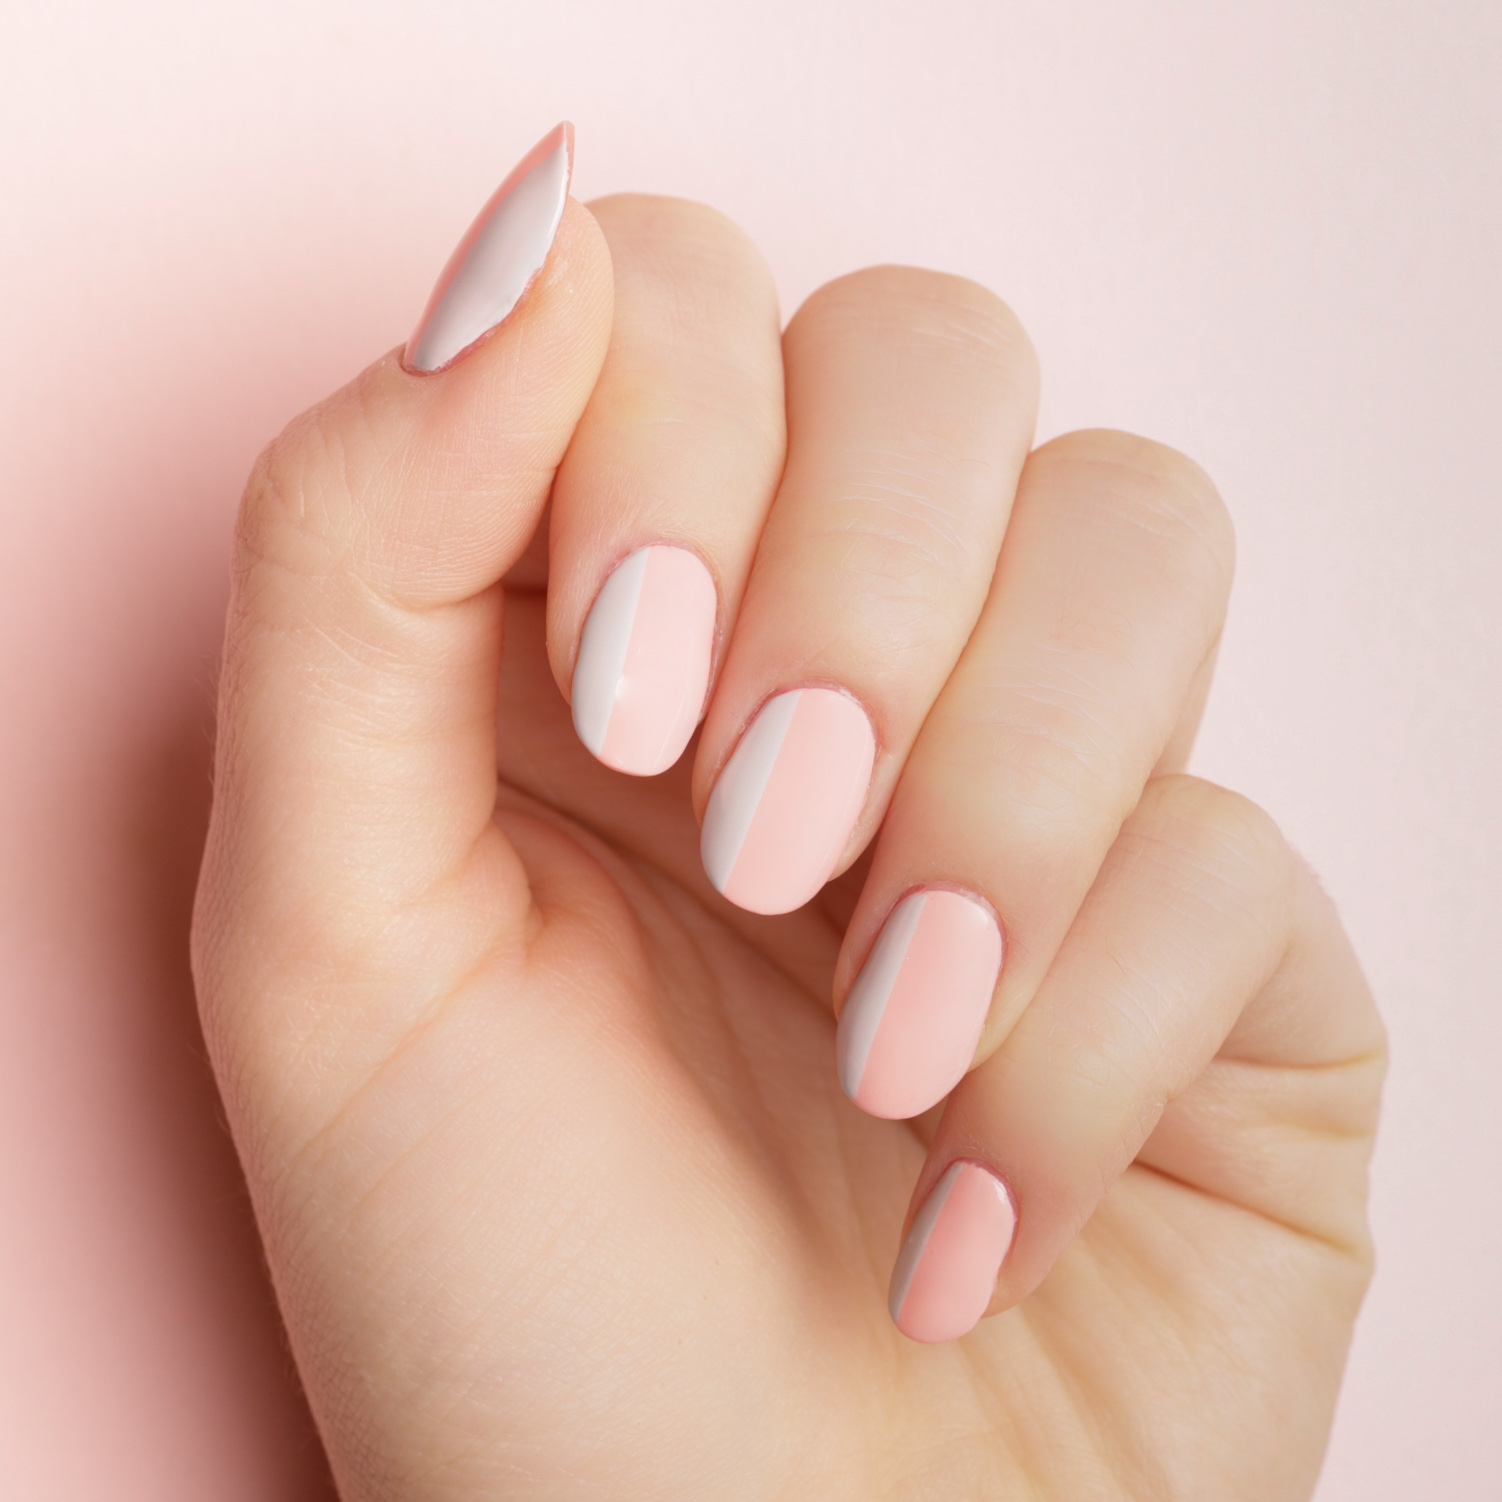 Get Super Cute Valentine S Nails With This Easy Diy Tutorial Lulus